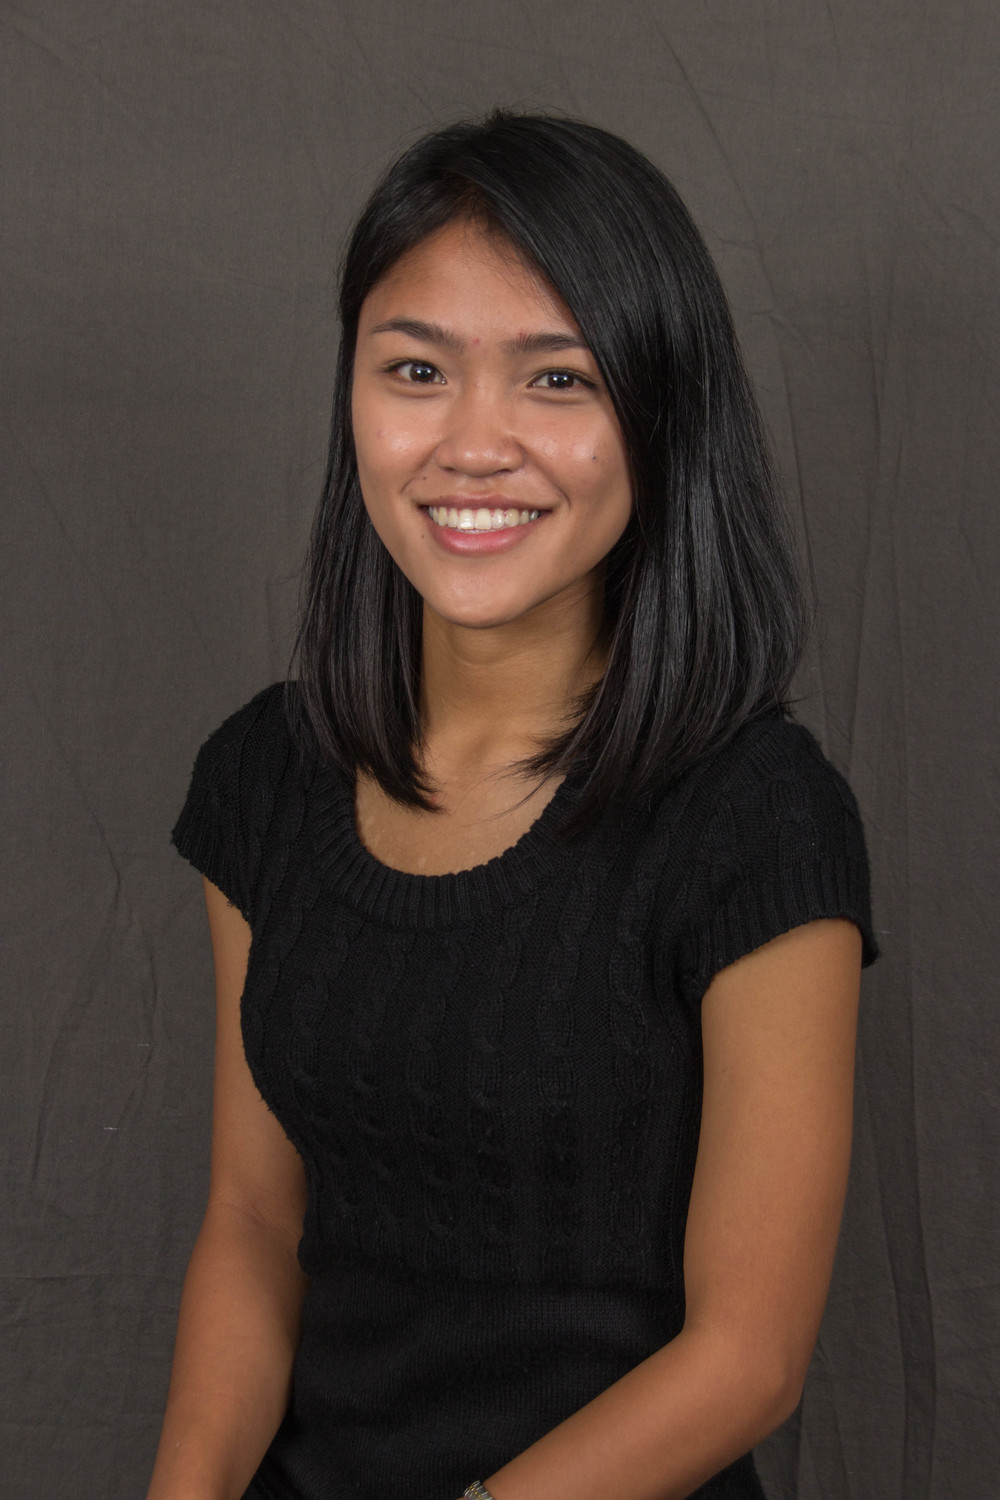 """""""I didn't consider myself as a leader prior to CTL. Before, I looked at myself as a follower rather than a leader. CTL has boosted my confidence as a leader to take actions on things facing our community and to take risks. I believe that I helped McKinley realize that respect is a vital key in building relationships in school."""" Liezl Agustin   CTL Class of 2012& 2013  McKinley High School"""